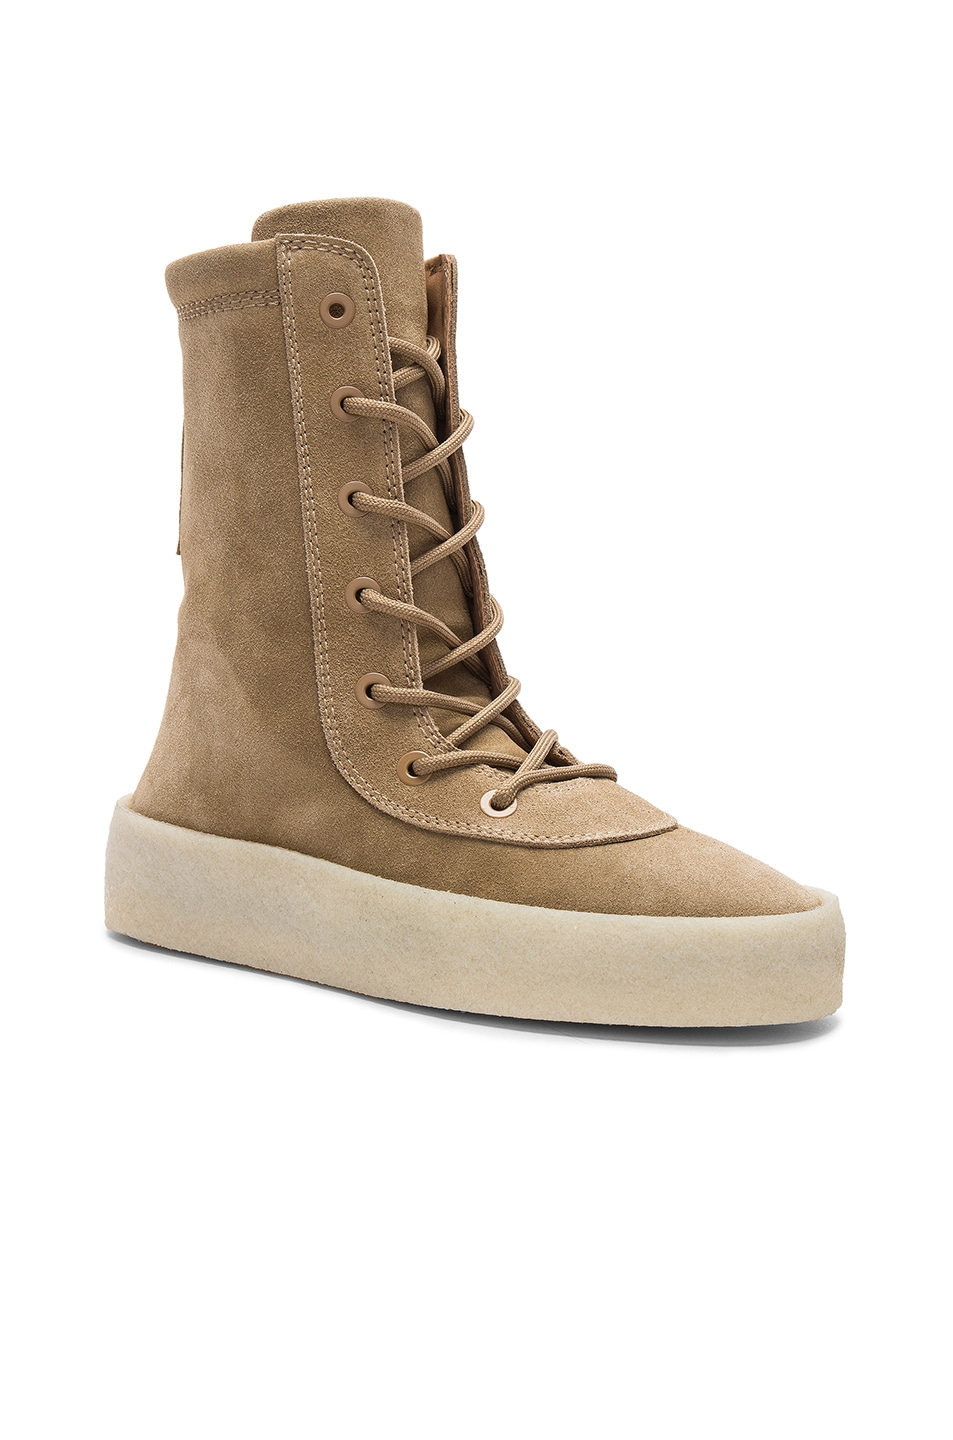 Image 1 of YEEZY Season 4 Suede Crepe Boots in Taupe